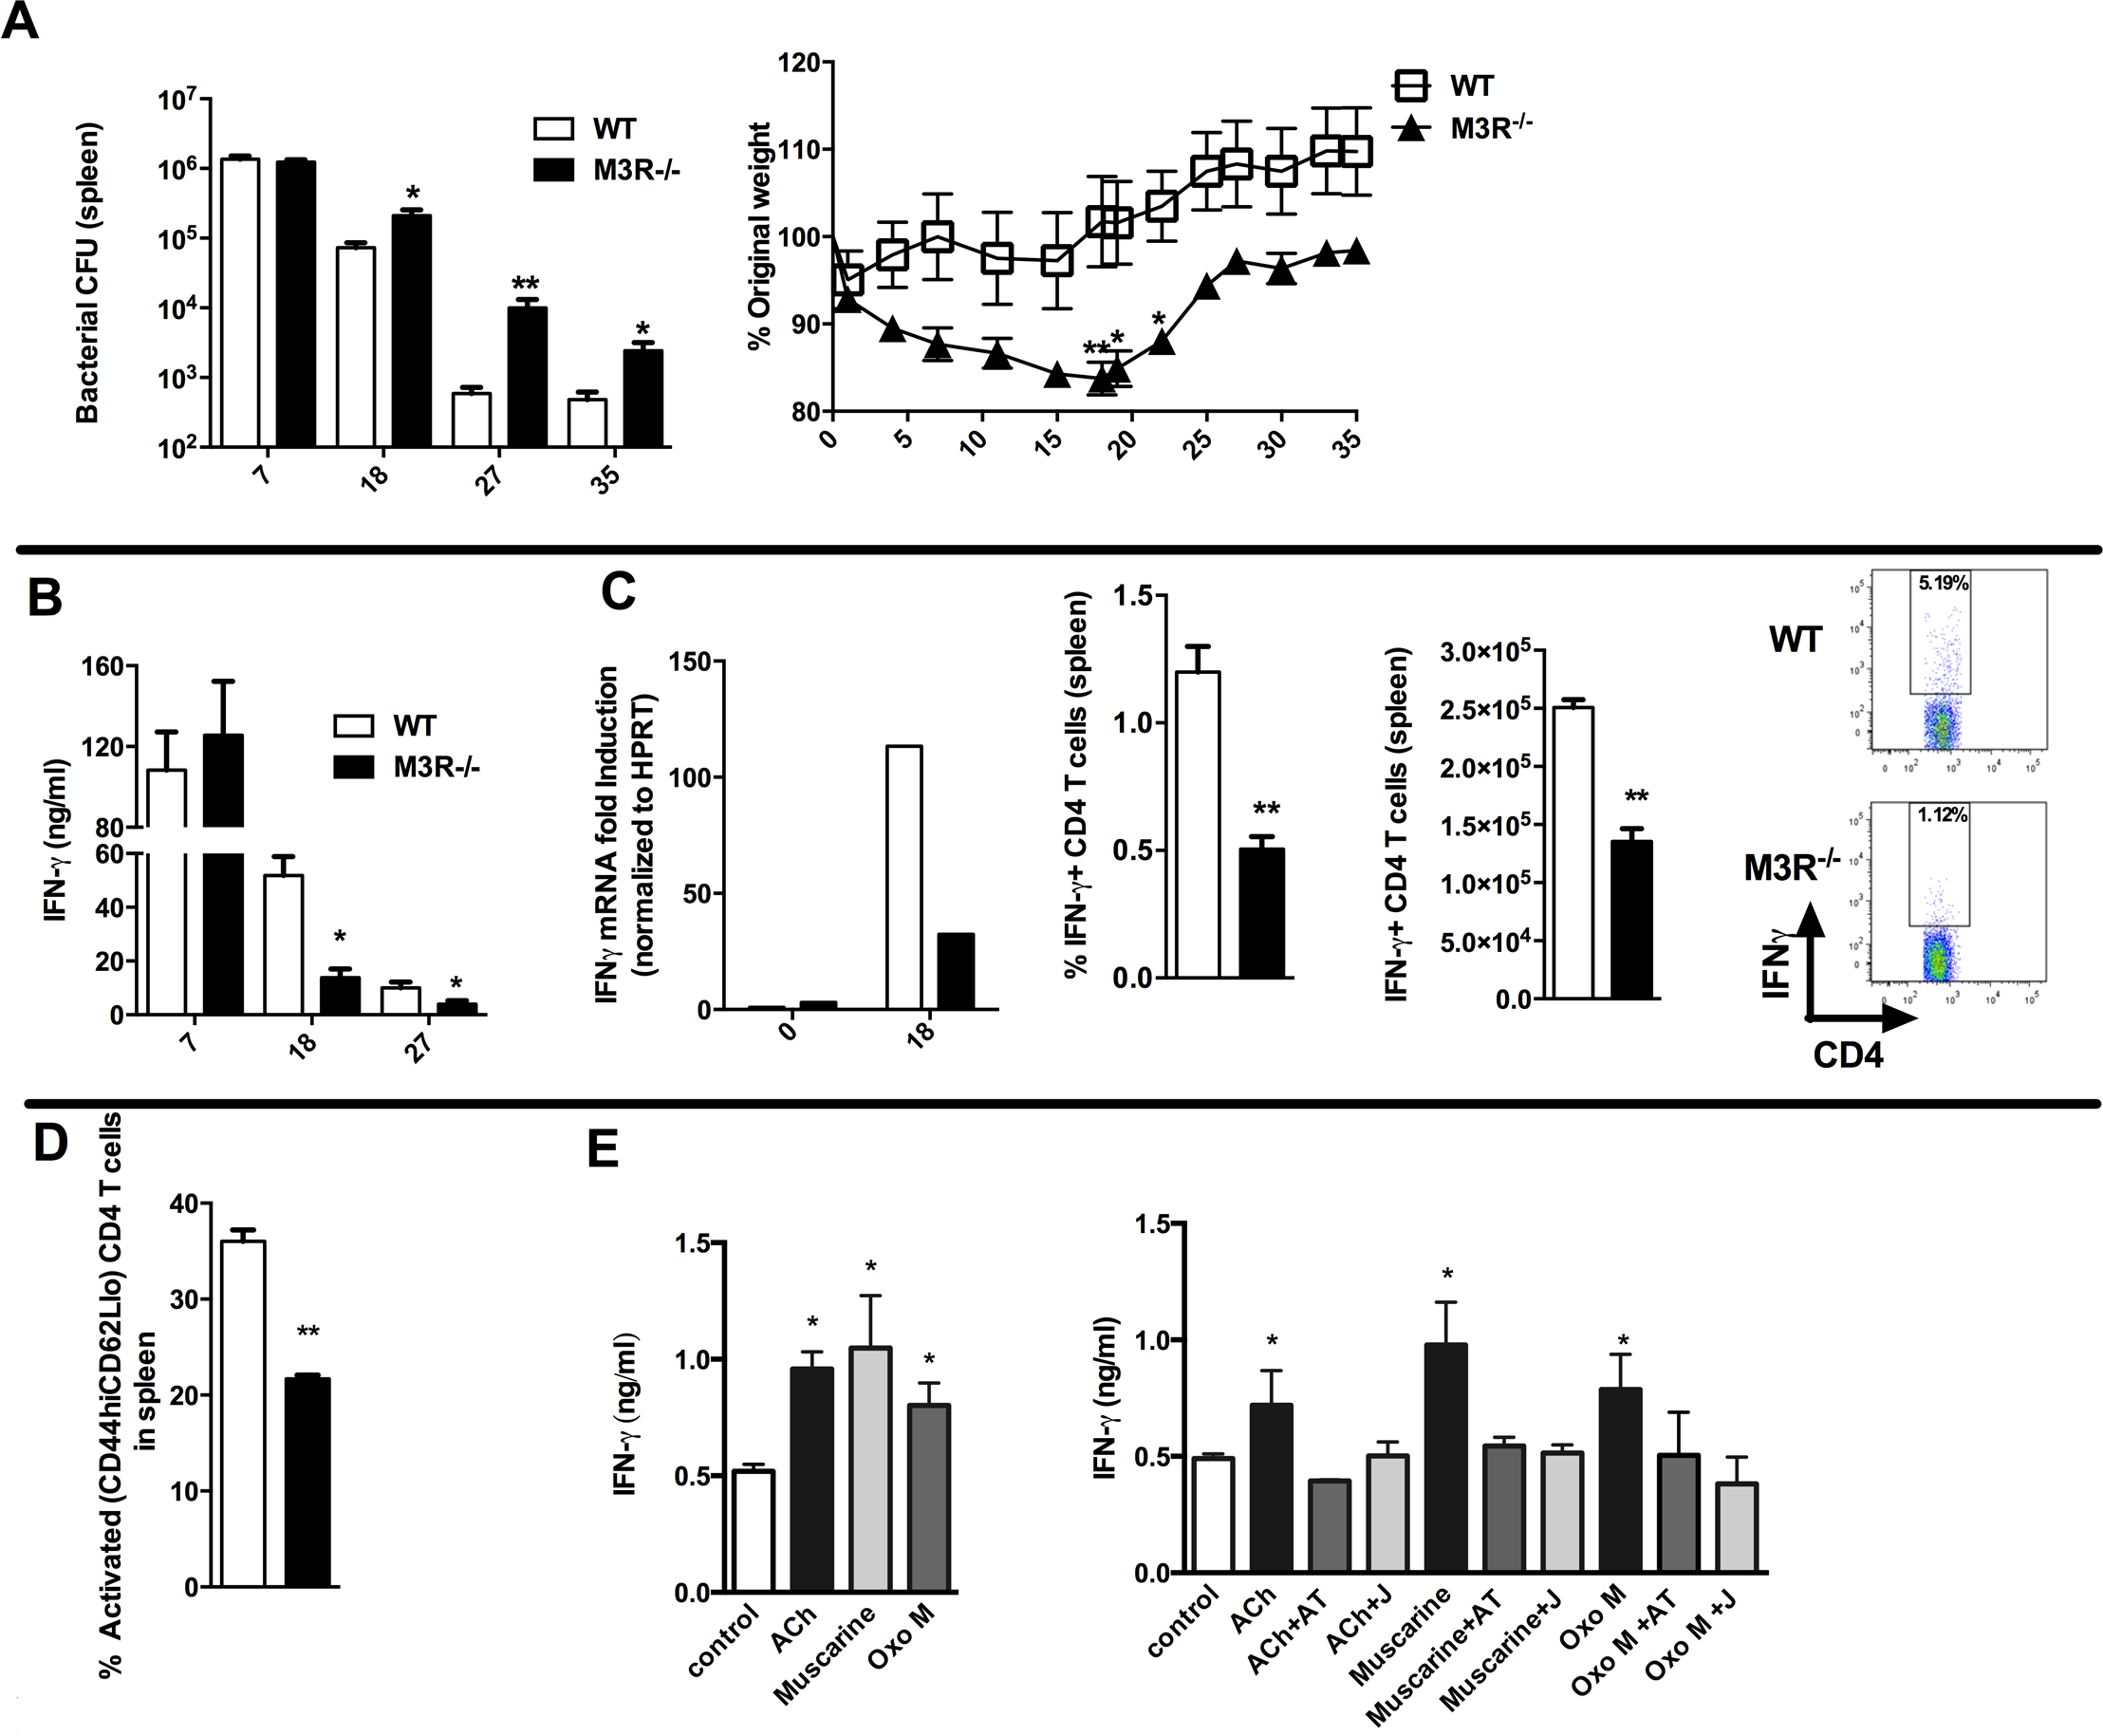 M3R deficient mice are more susceptible to <i>S. typhimurium</i> infection and exhibit impaired CD4 T cell responses.